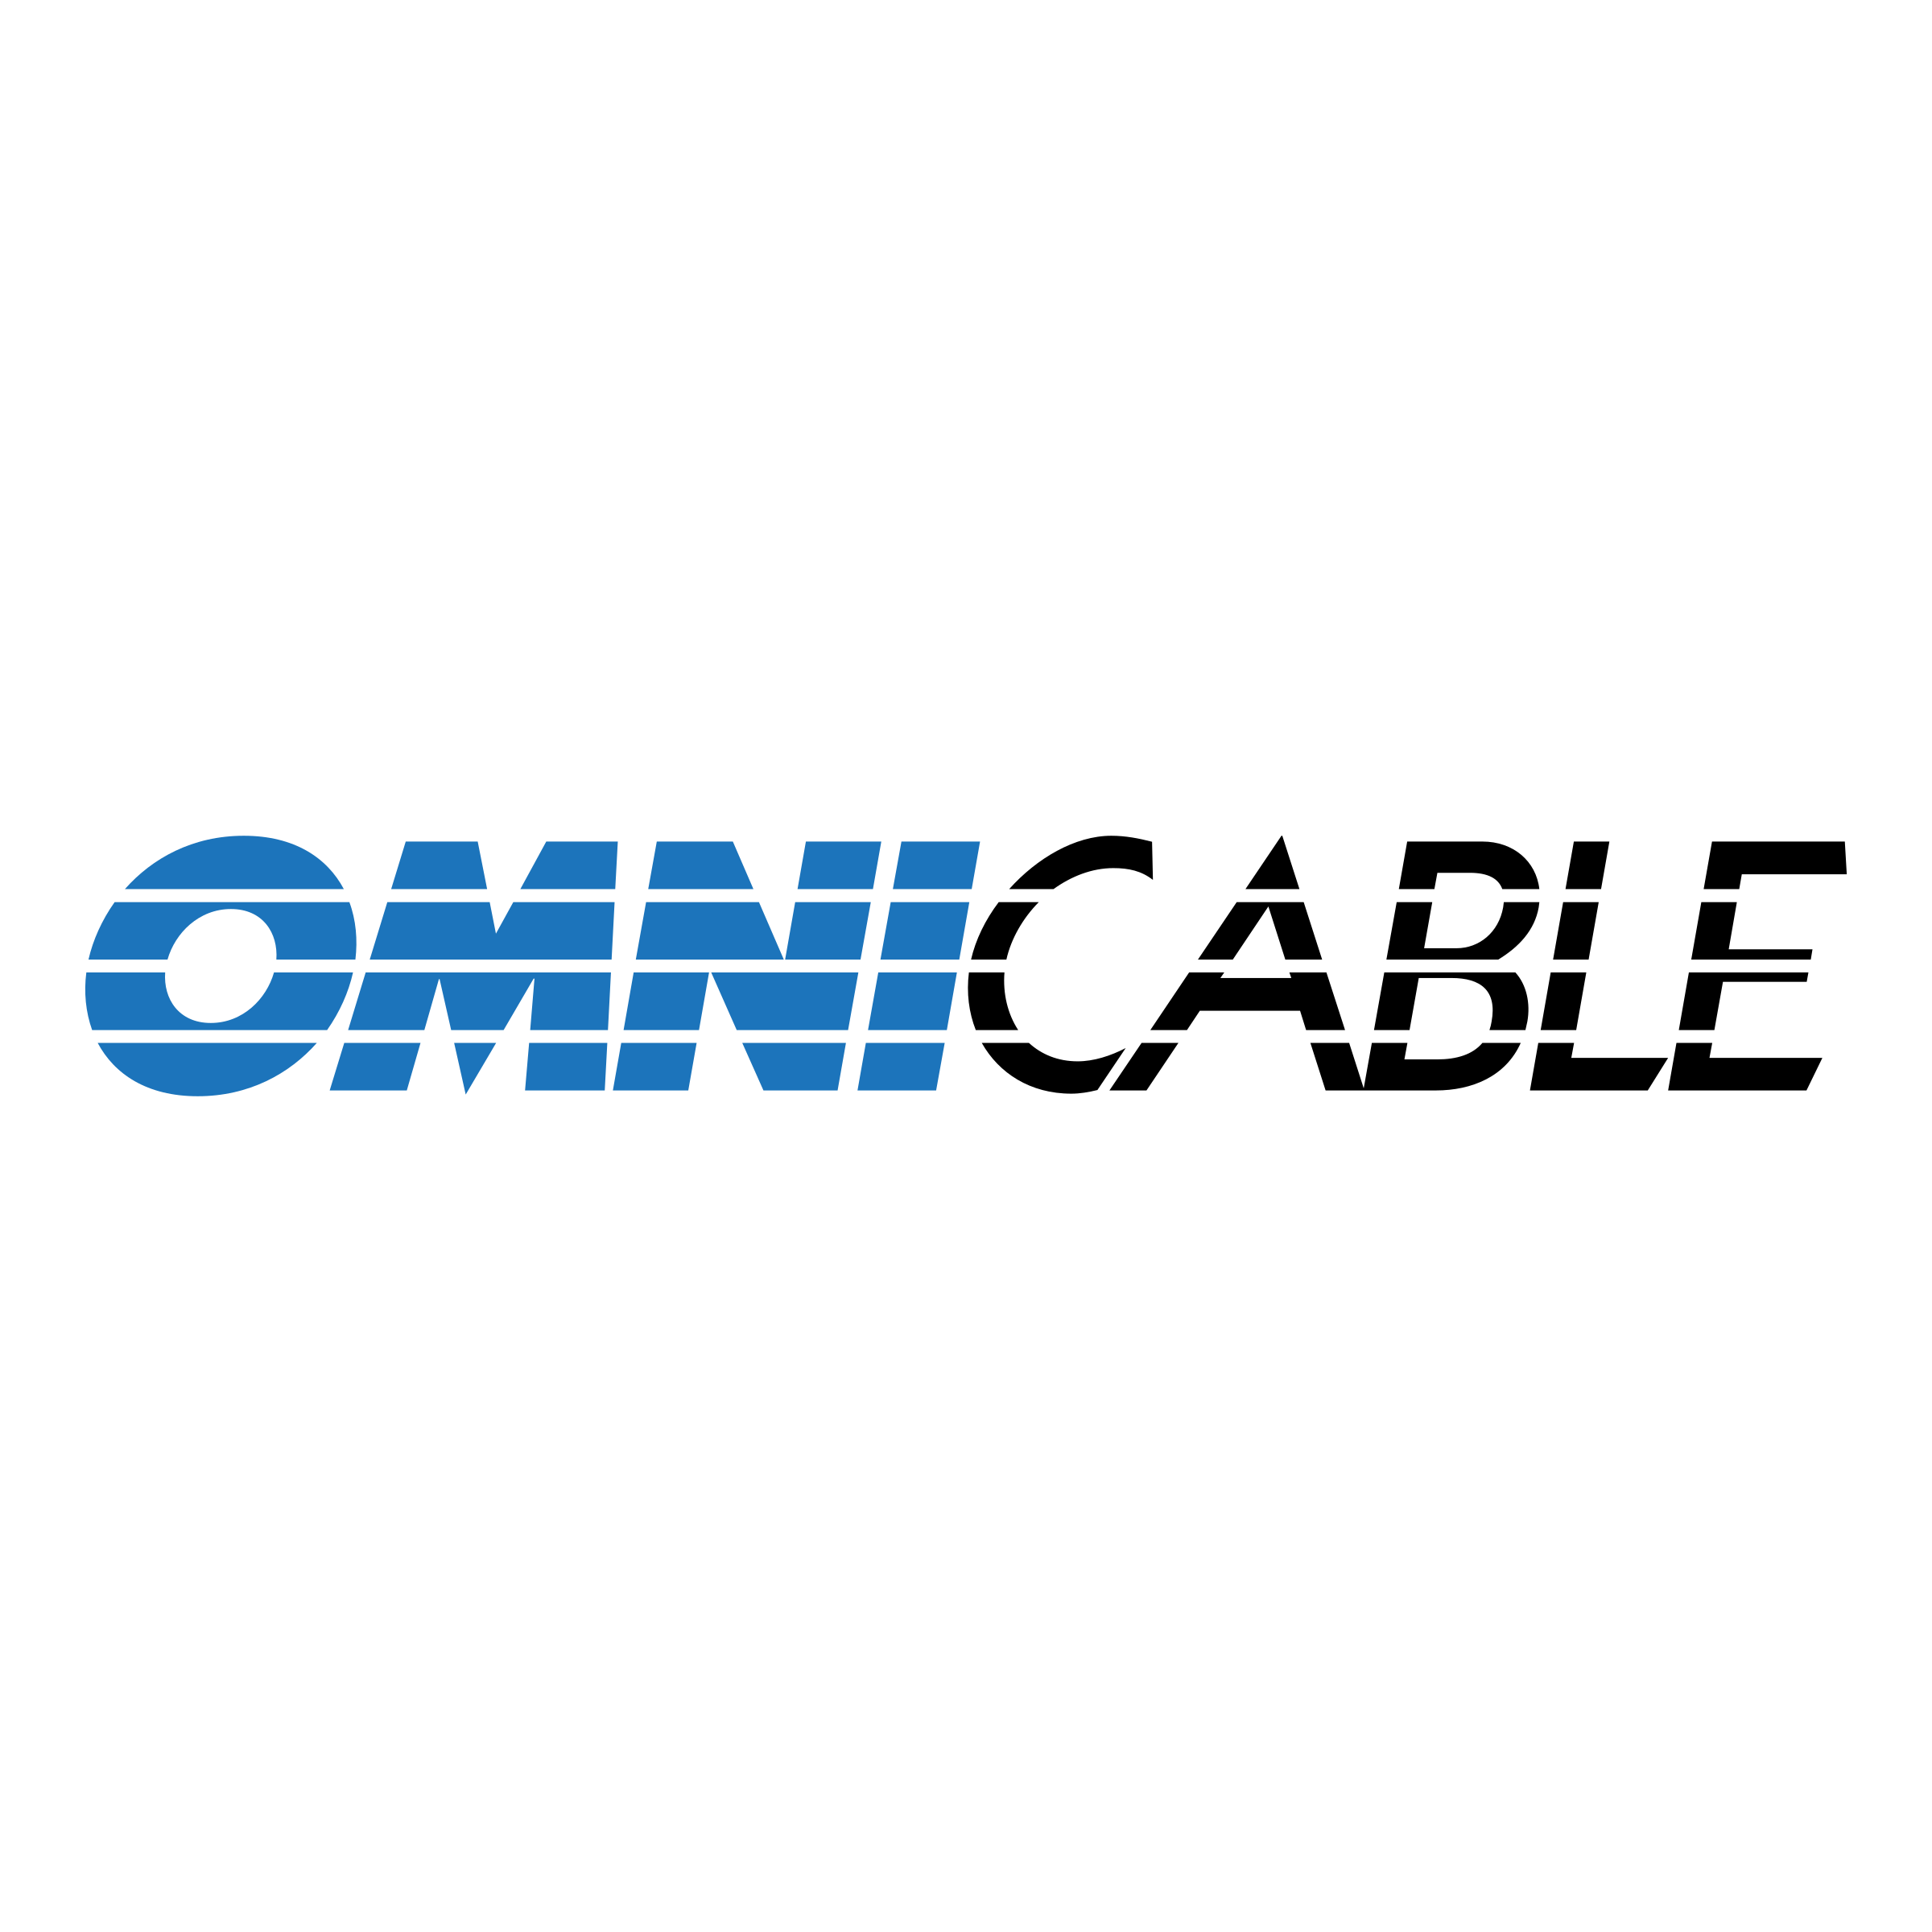 Omni Cable Logo PNG Transparent